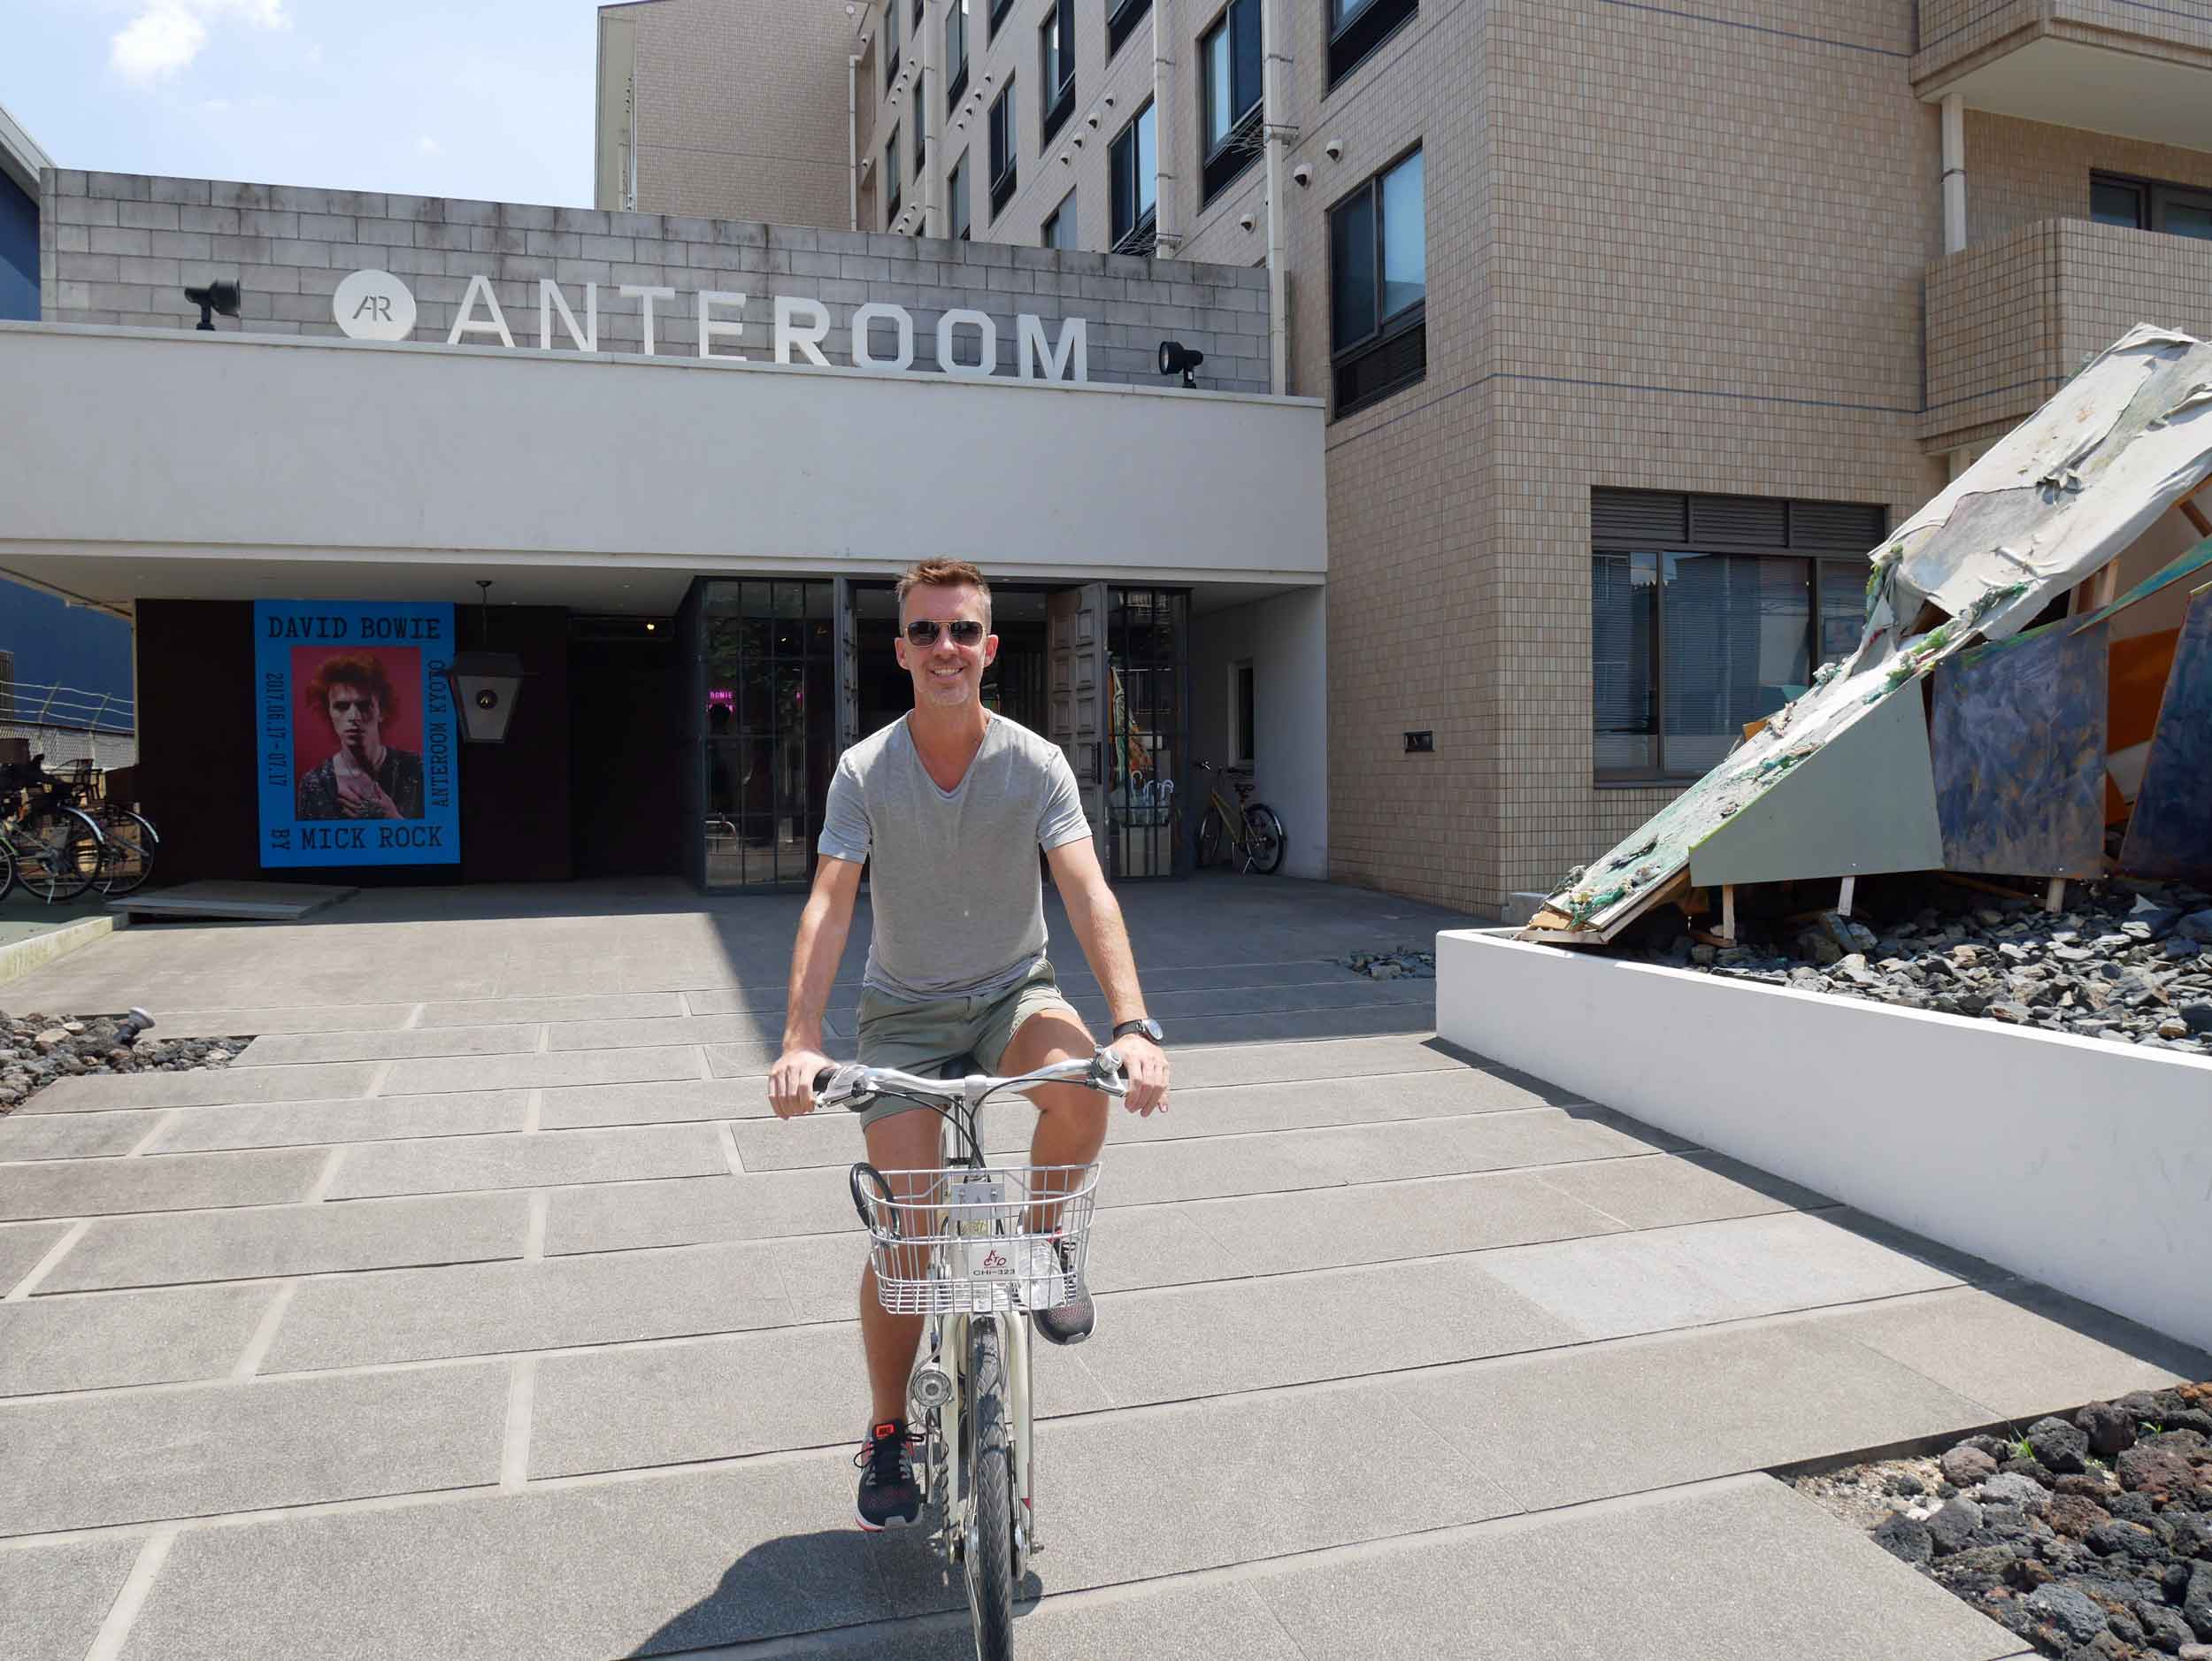 After checking in, we checked out Anteroom's bicycles, our preferred mode of transportation for the weekend.